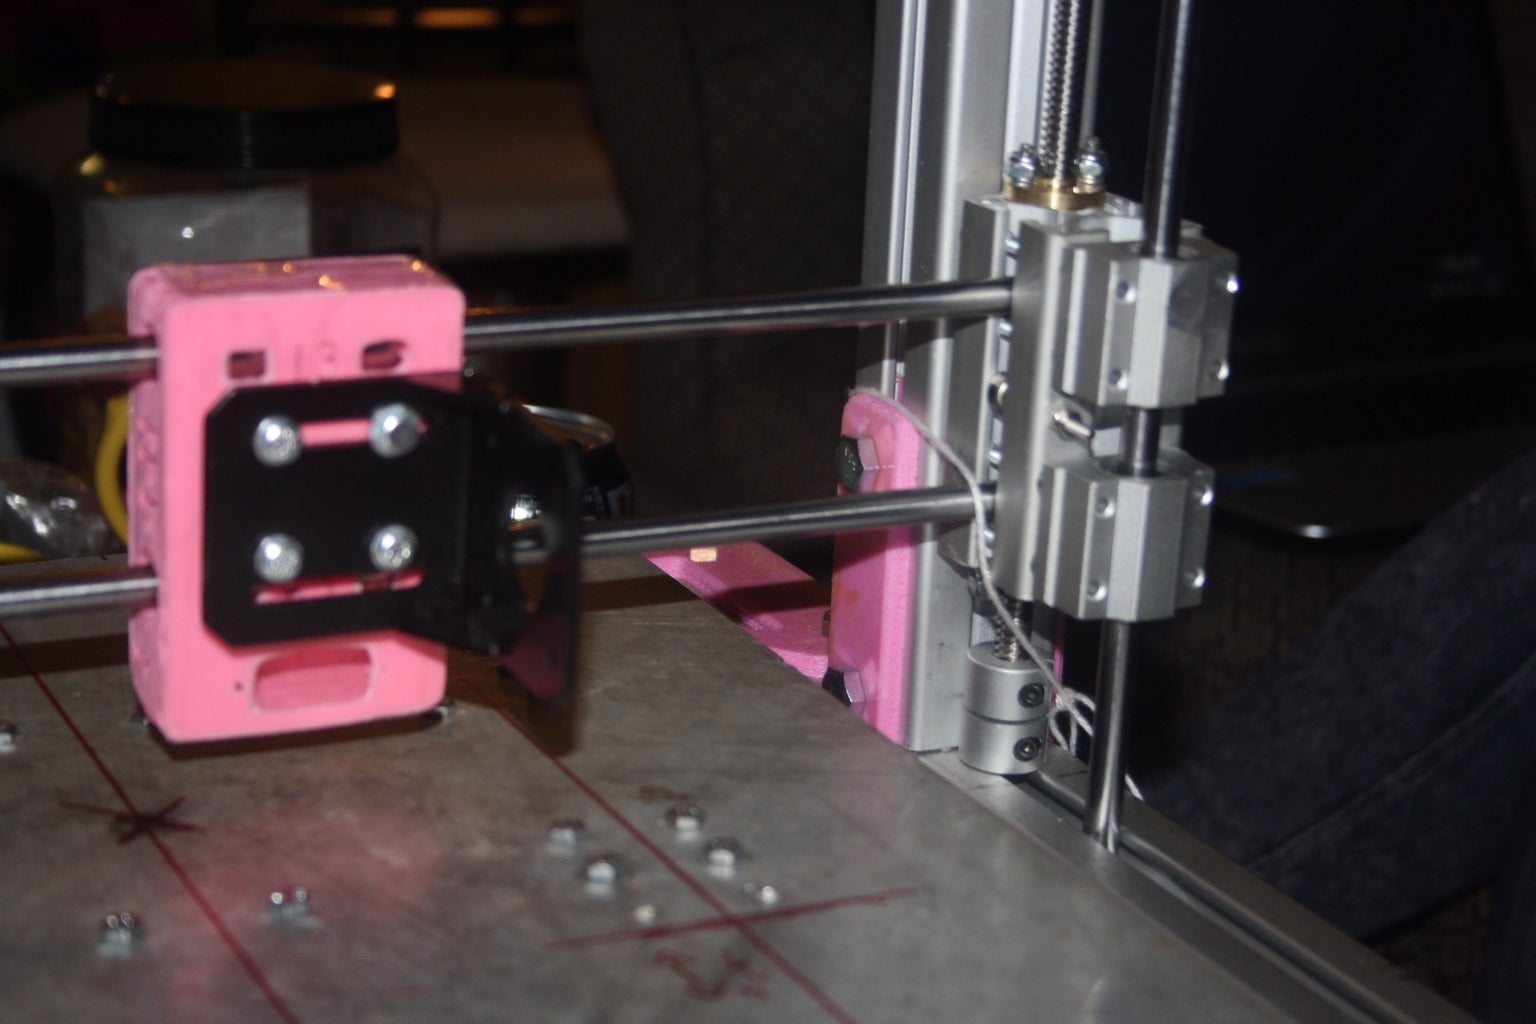 Extrusion 3d Printer With 300mmx300mm Heat Bed With Pre-configured Marlin and Controlled Via Wifi